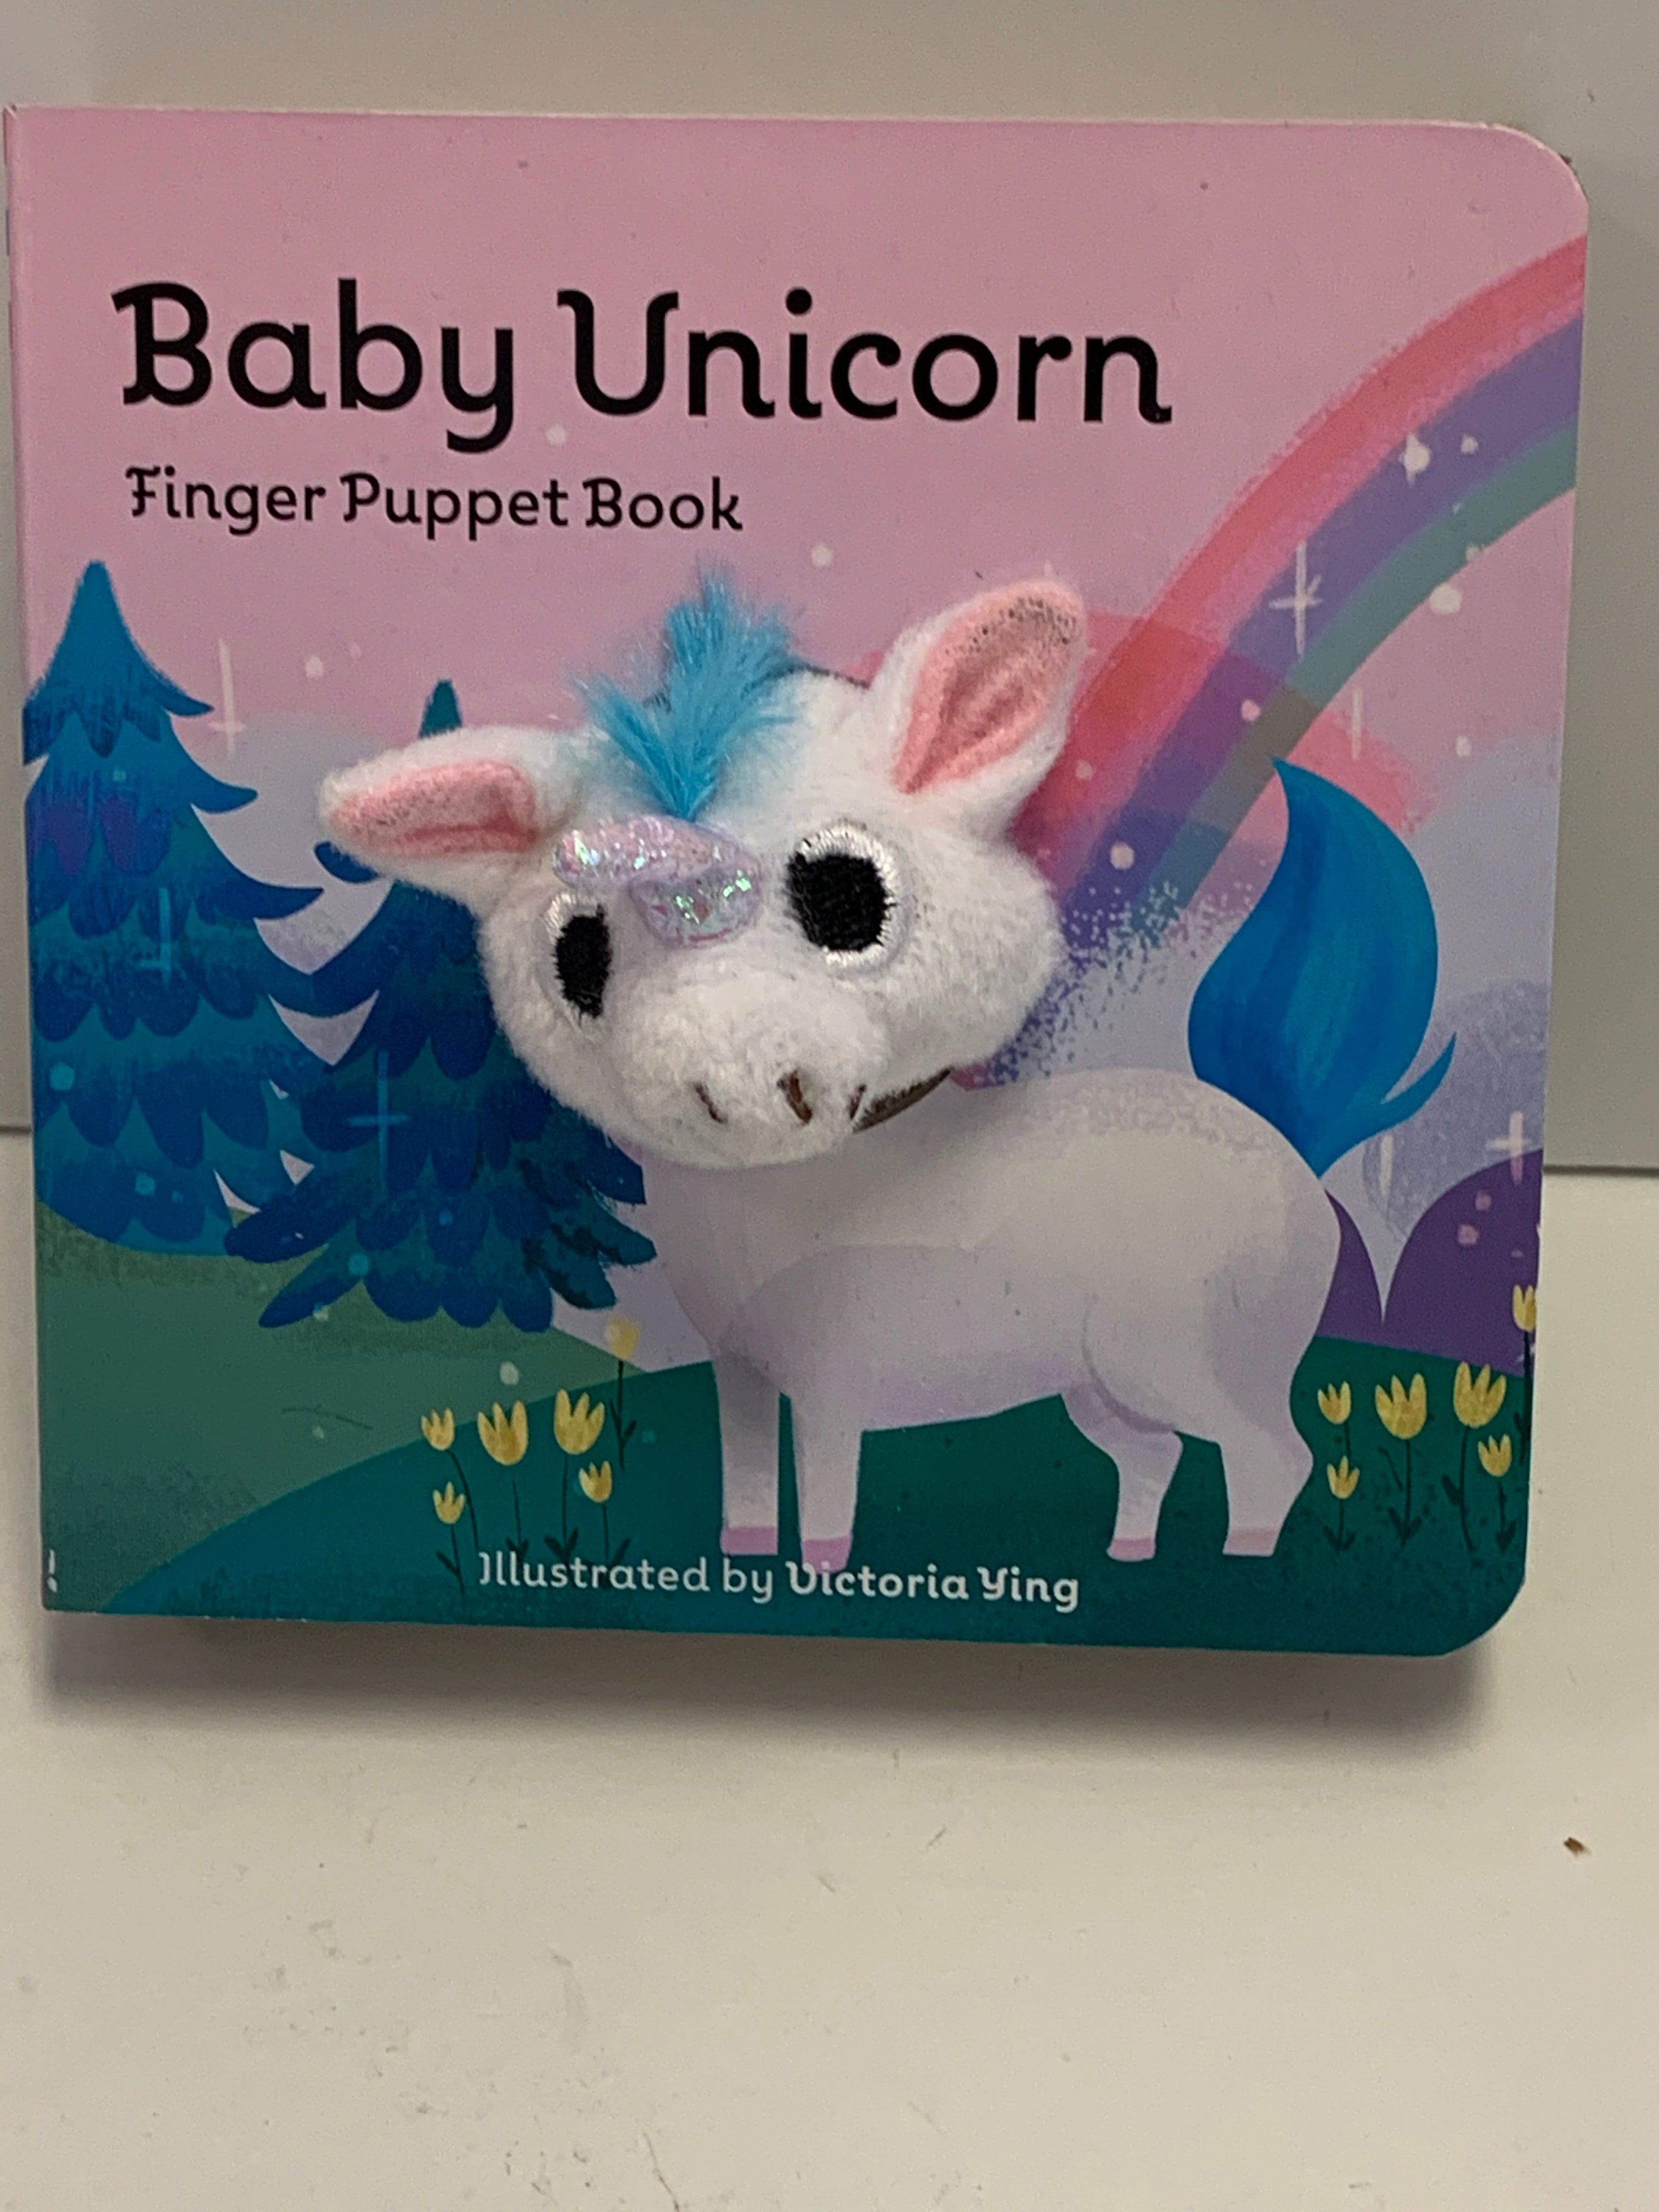 Finger Puppet Book - Baby Unicorn